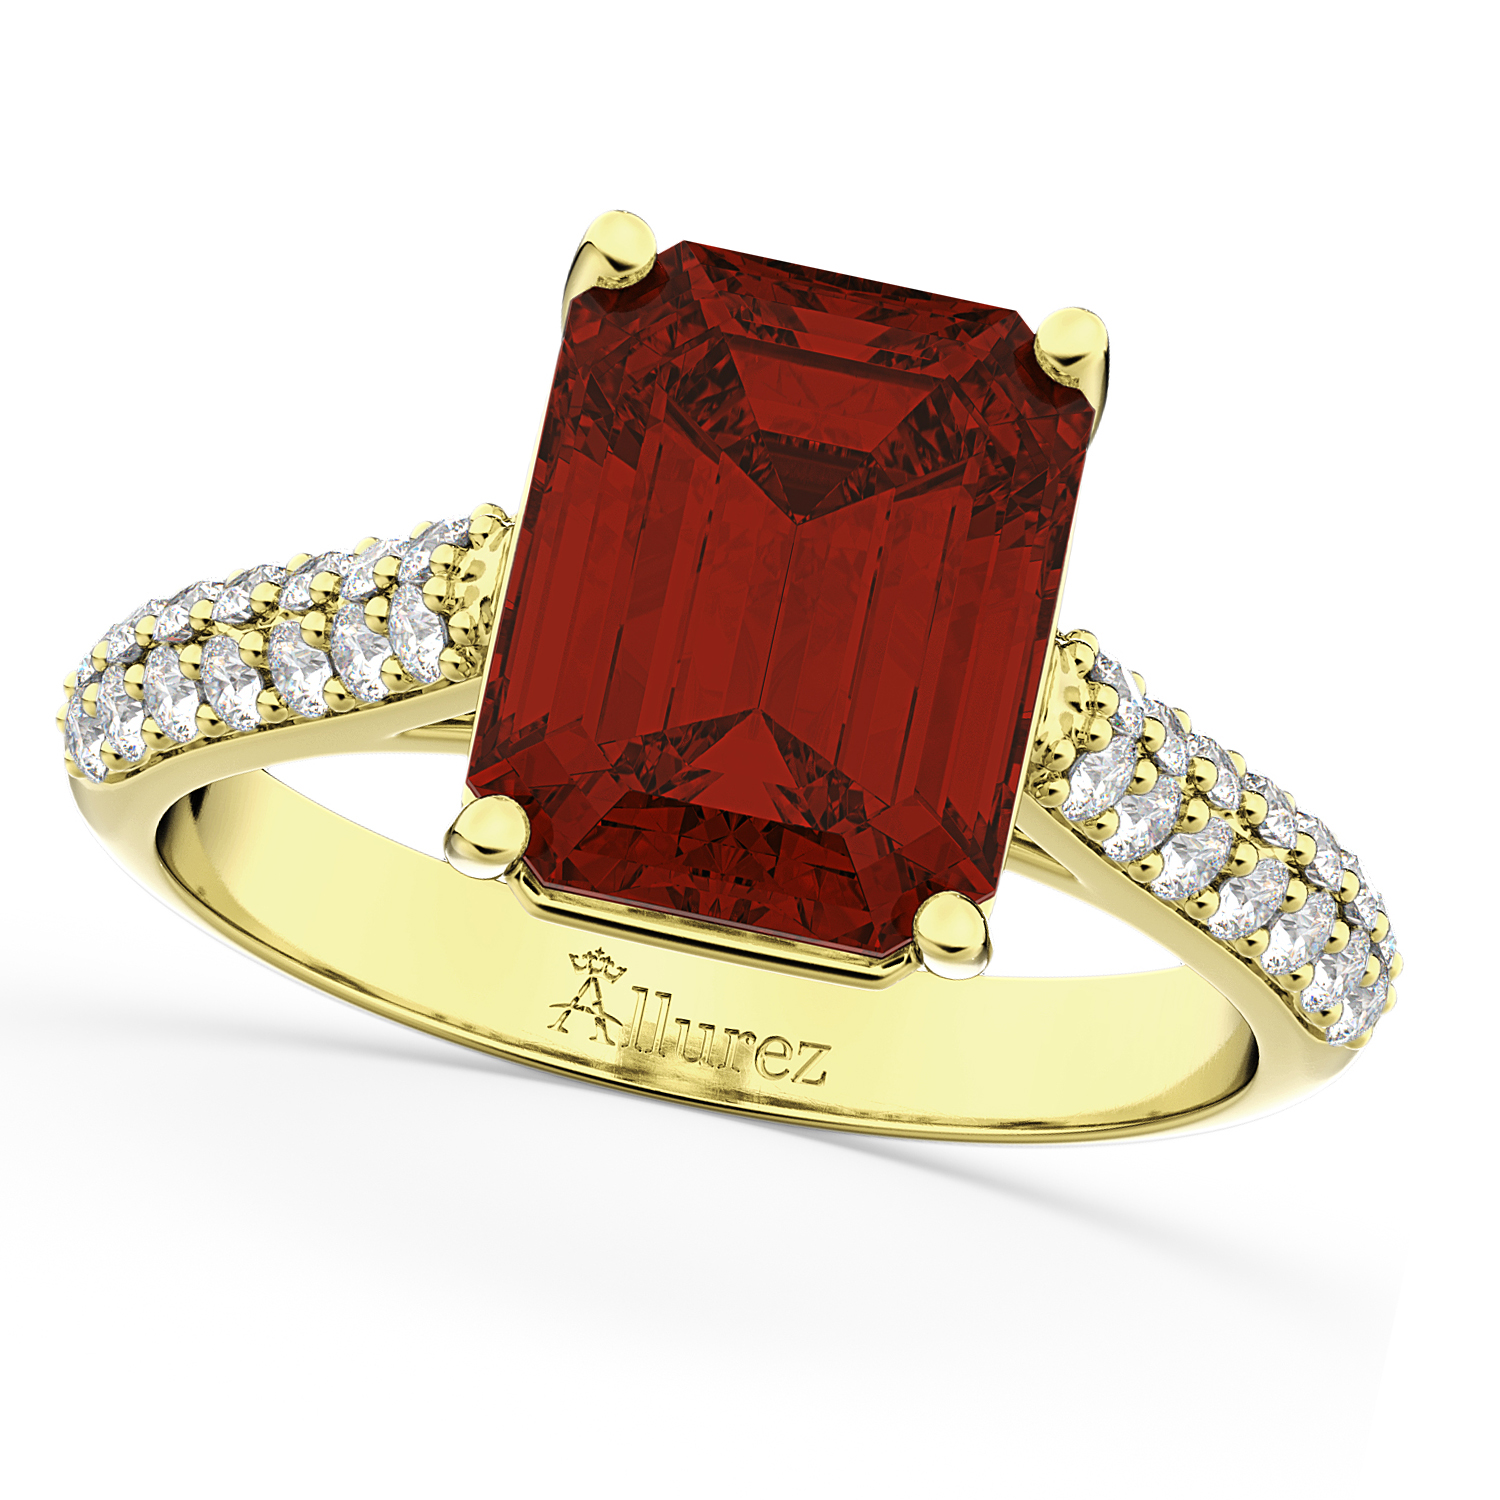 Allurez Emerald-Cut Garnet and Diamond Ring 14k Yellow Go...